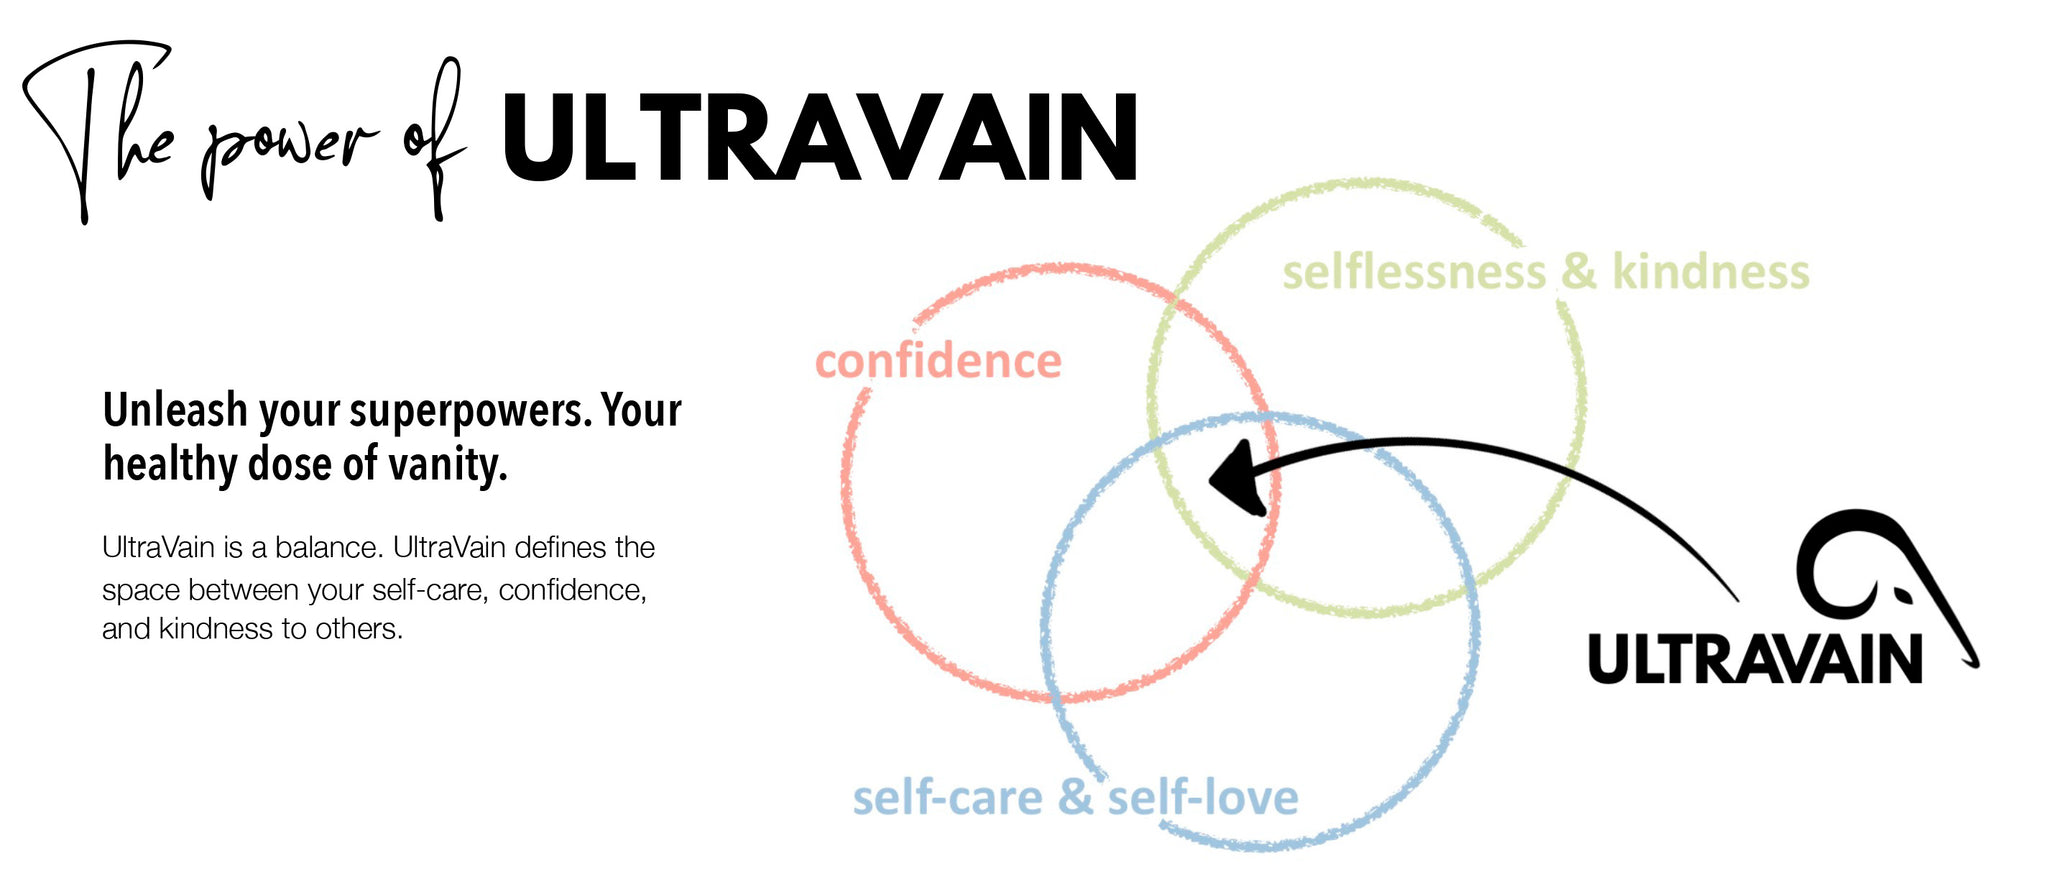 Unleash your superpowers. Your healthy dose of vanity. UltraVain is a balance. UltraVain defines the space between your self-care, confidence, 